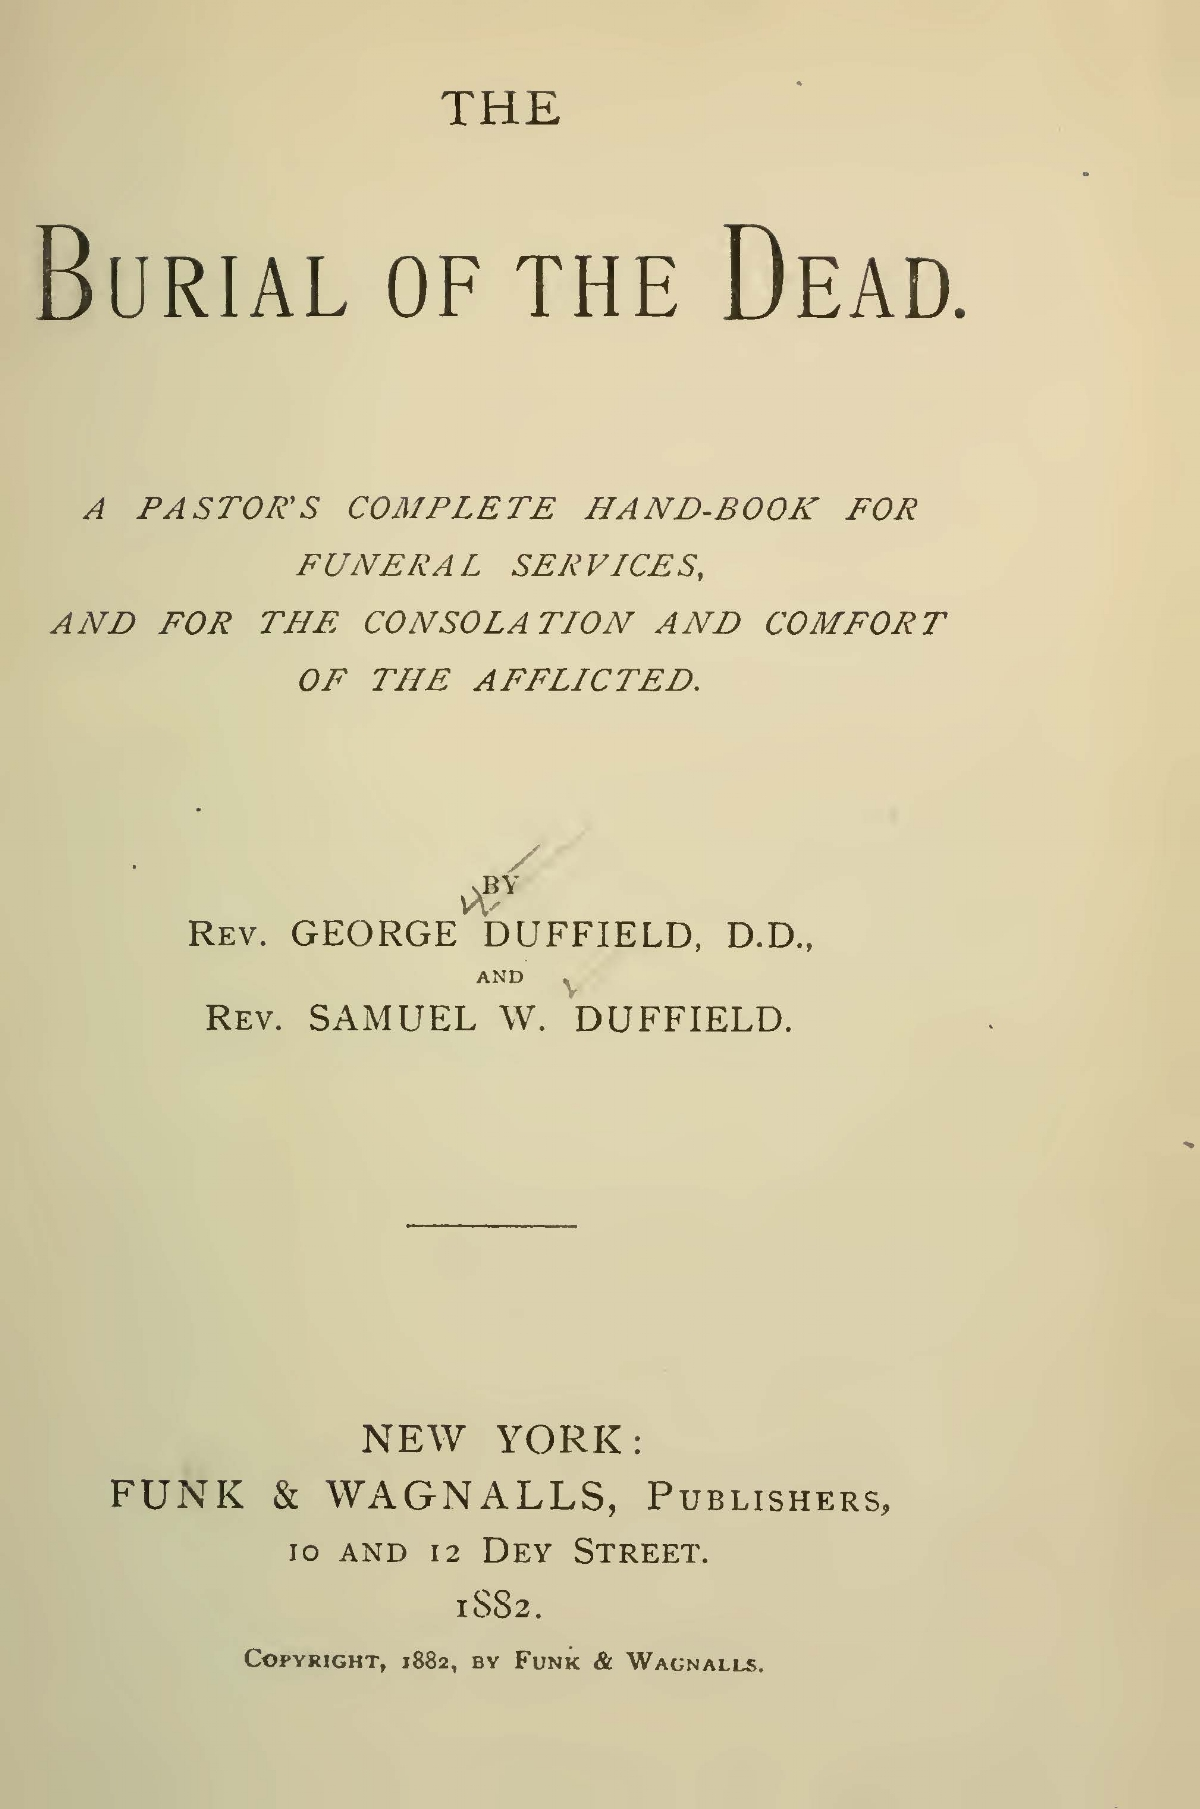 Duffield, V, George, The Burial of the Dead Title Page.jpg